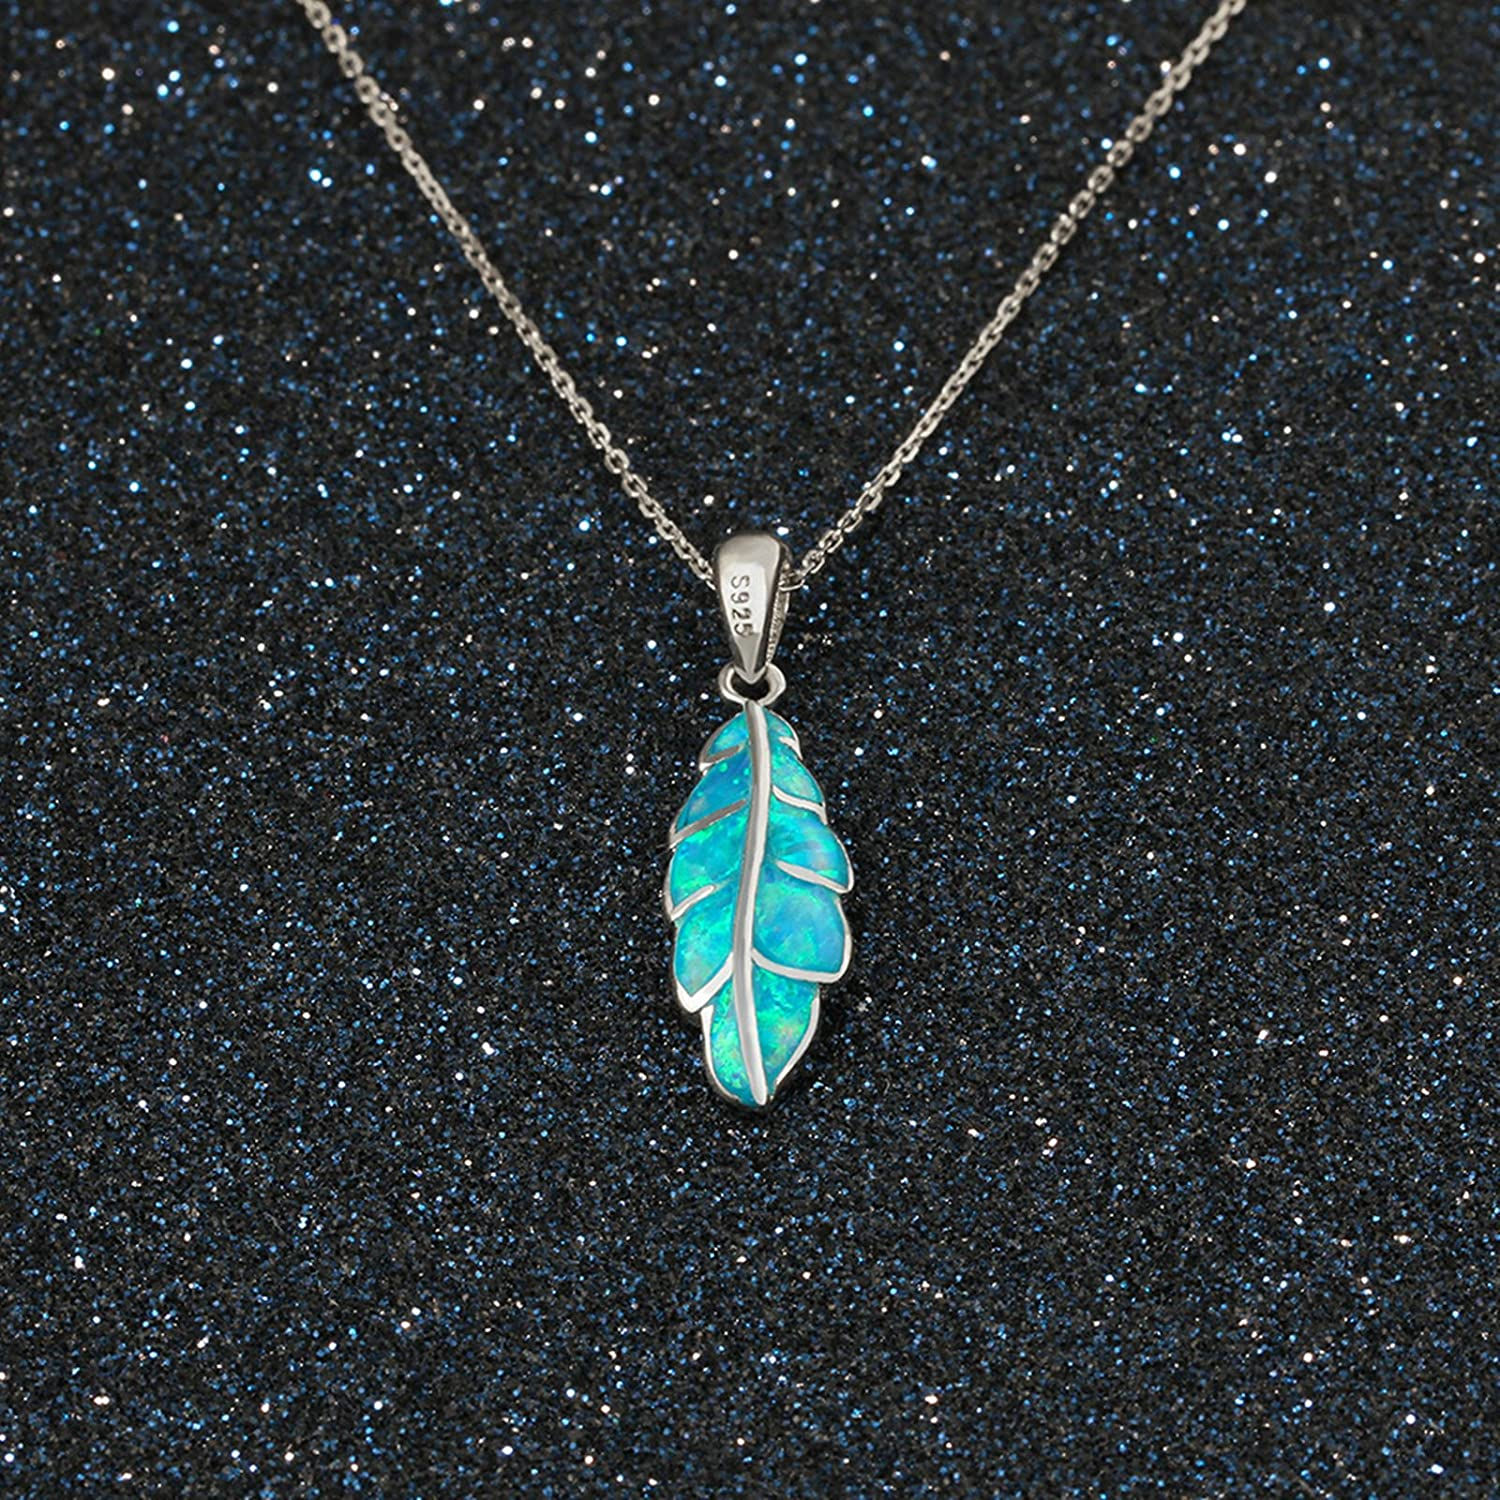 S925 Silver Leaf Pendant Necklace Blue Created-Opal Unisex for Women and Men ANAZOZ Women Jewelry